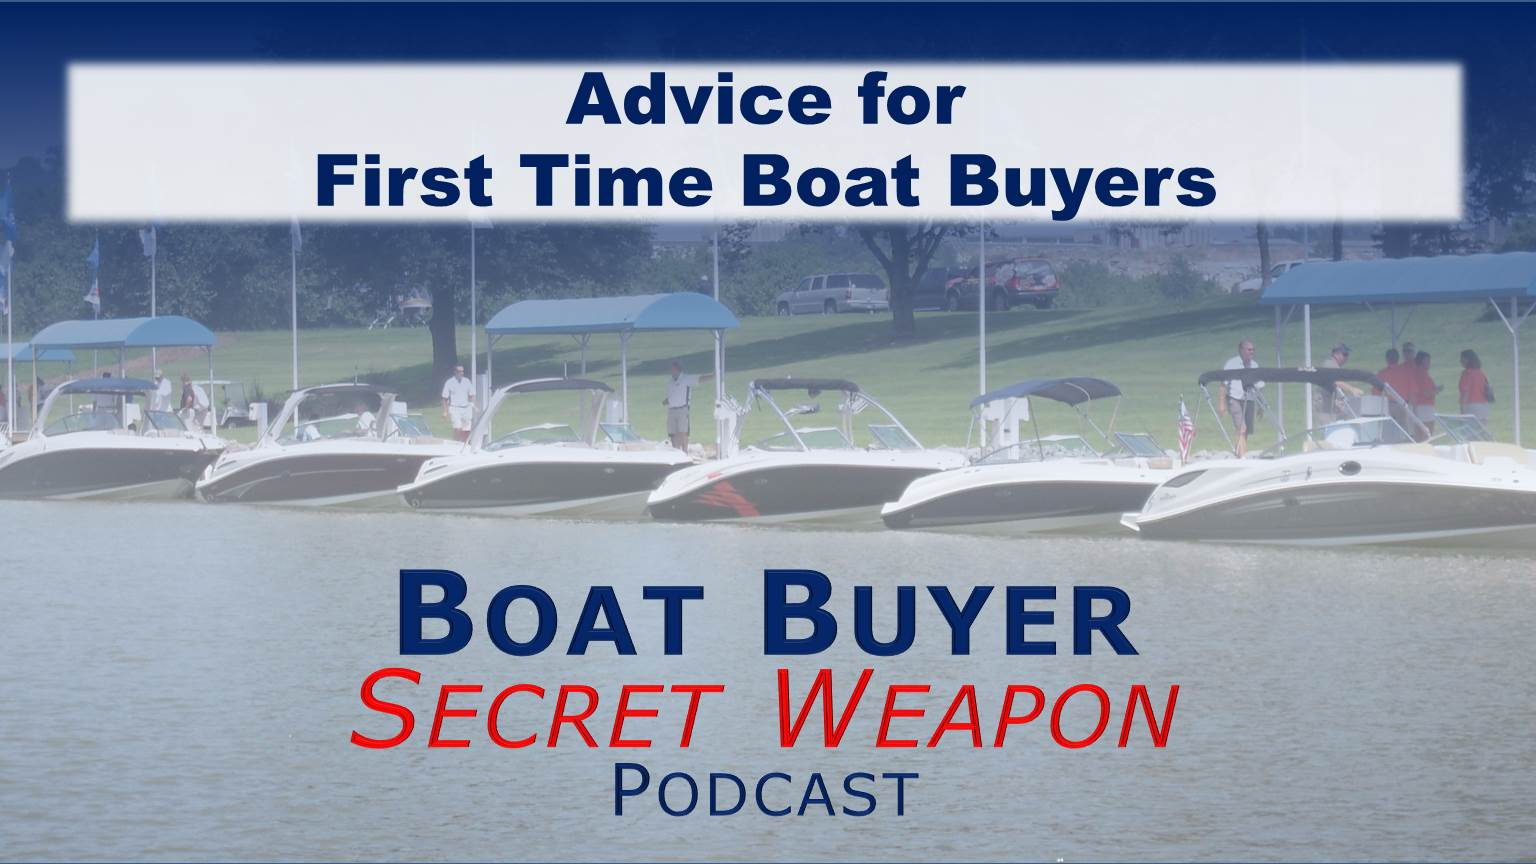 Advice for 1st Time Boat Buyers